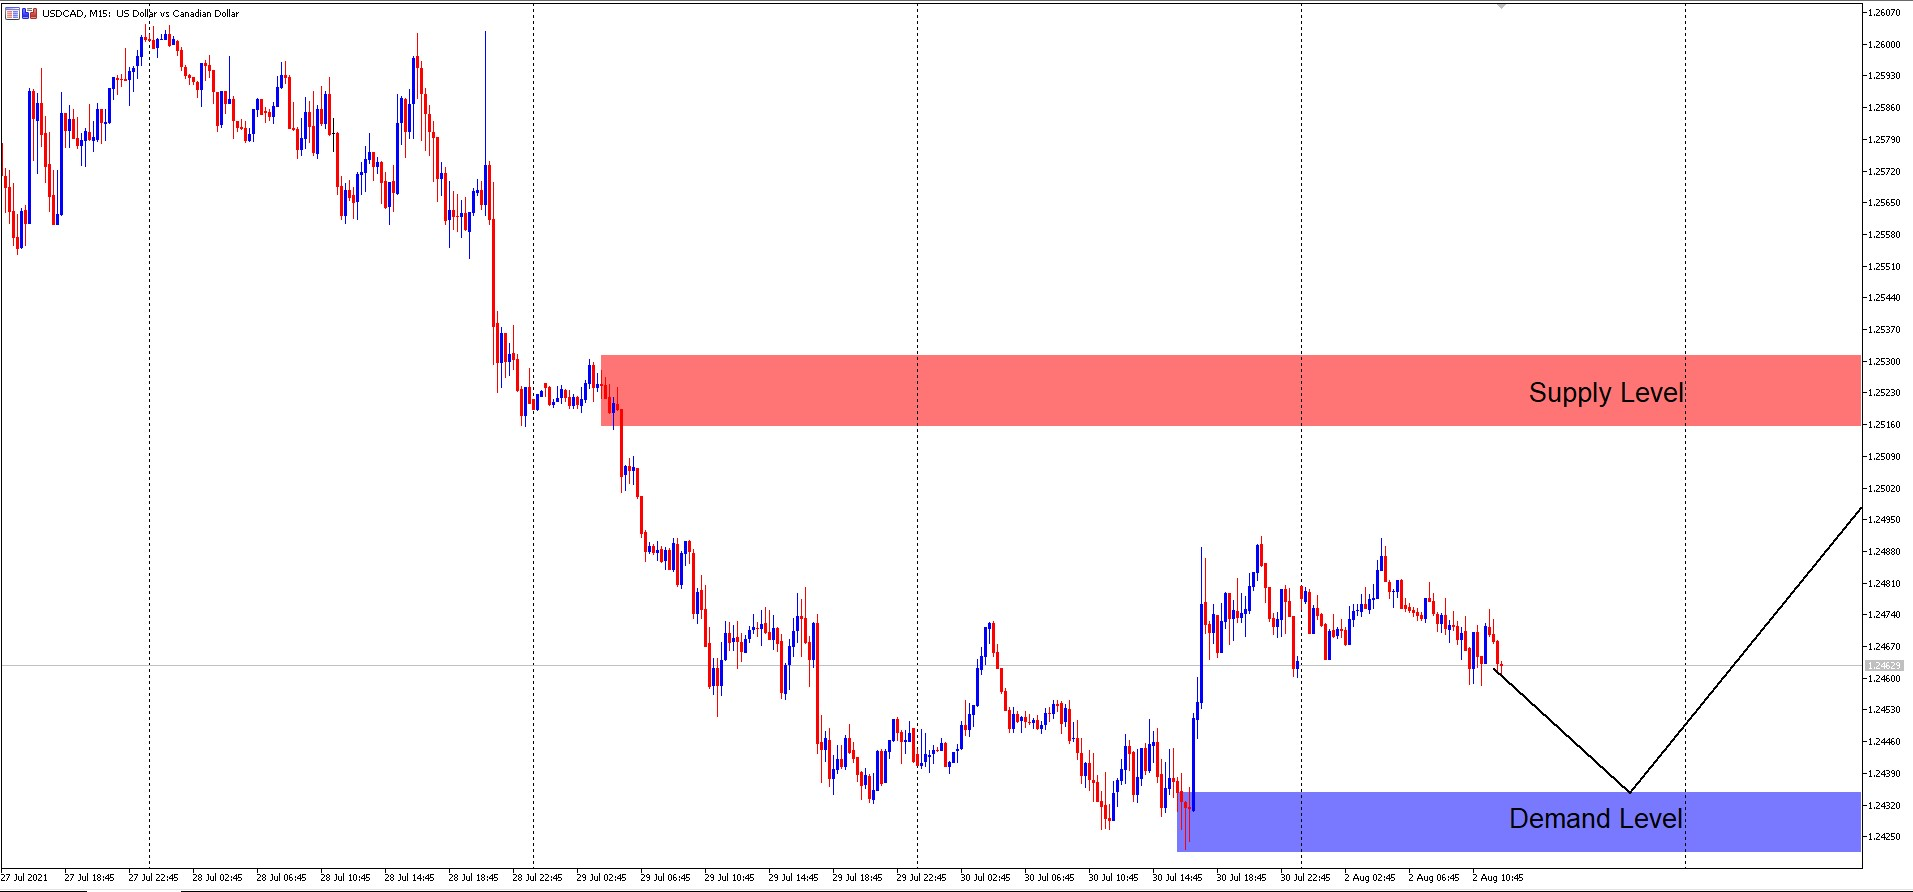 USD/CAD M15 Supply and Demand